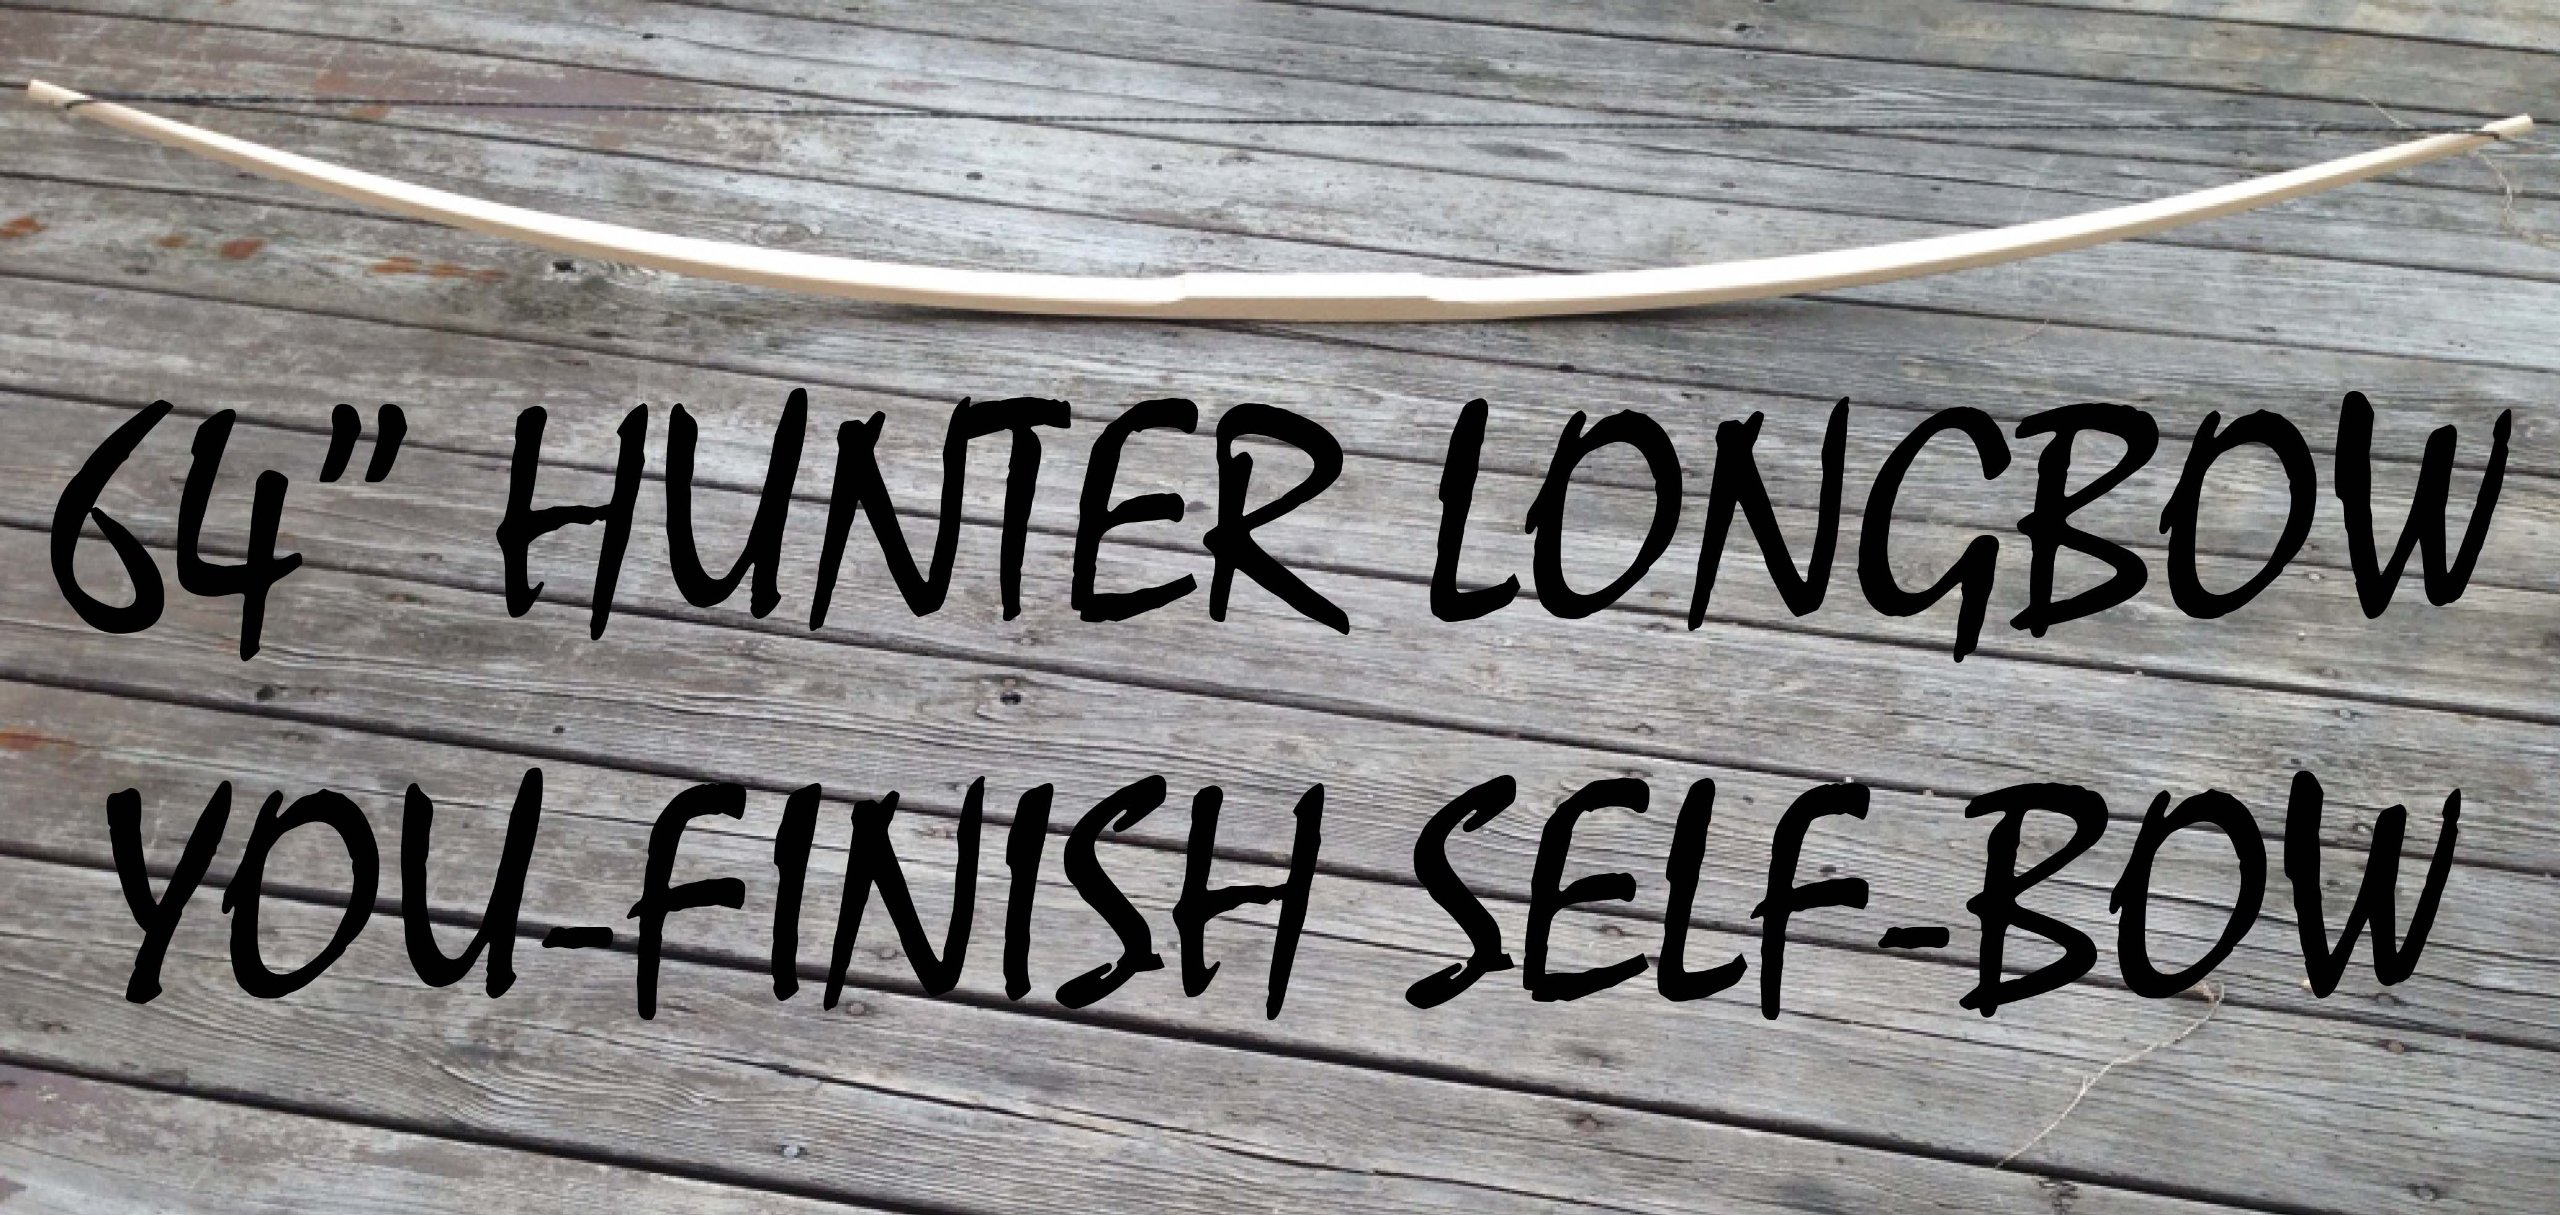 55lb 64'' You-Finish Traditional Hickory Longbow! Competition or Hunting Bow! Wood Archery! by RingingRocksArchery.com